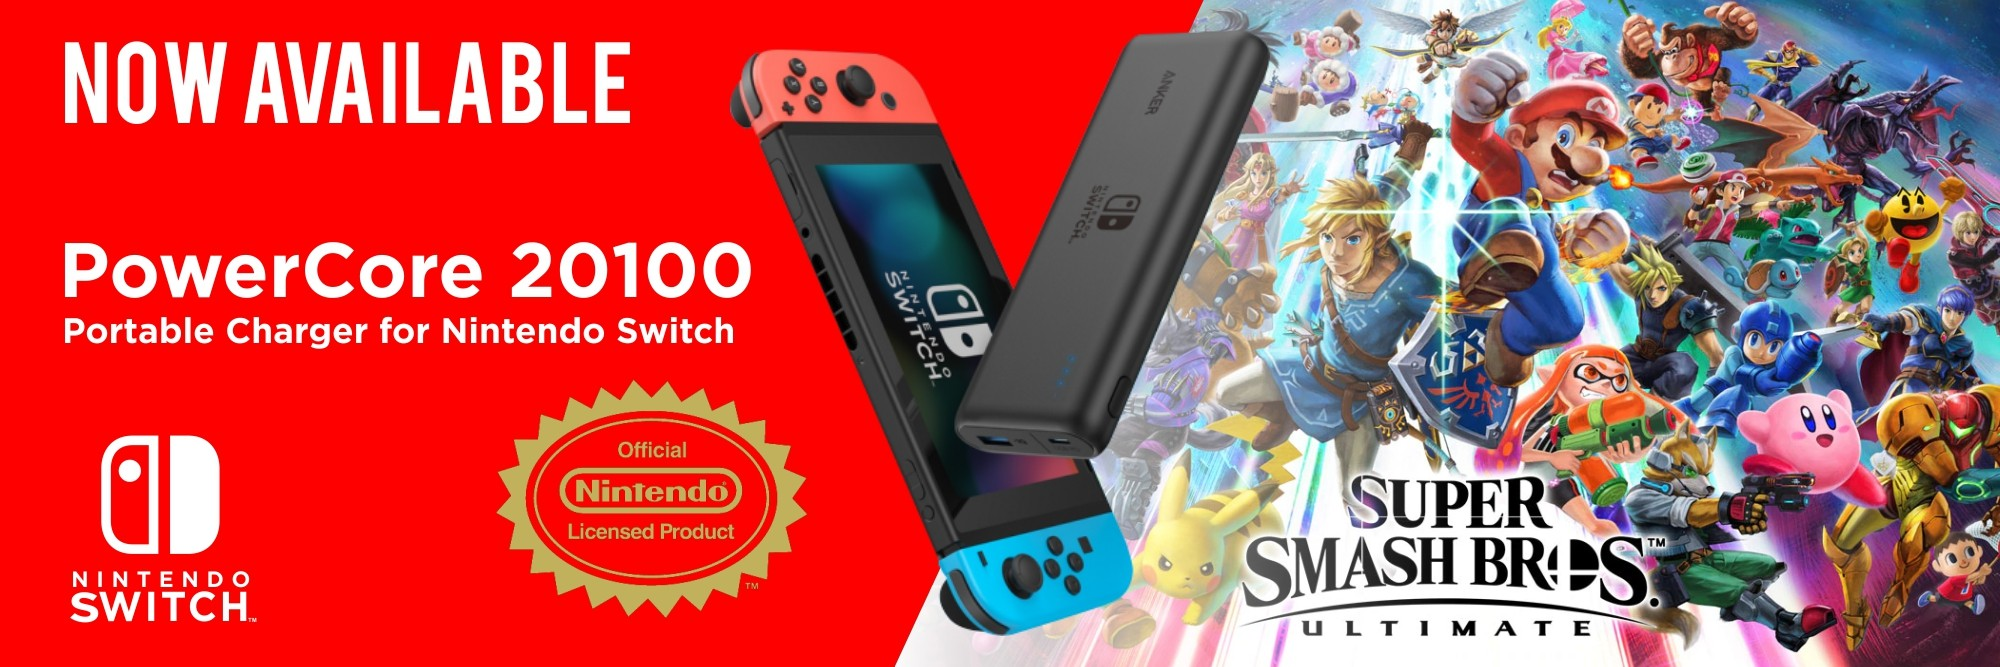 PowerCore Nintendo Switch